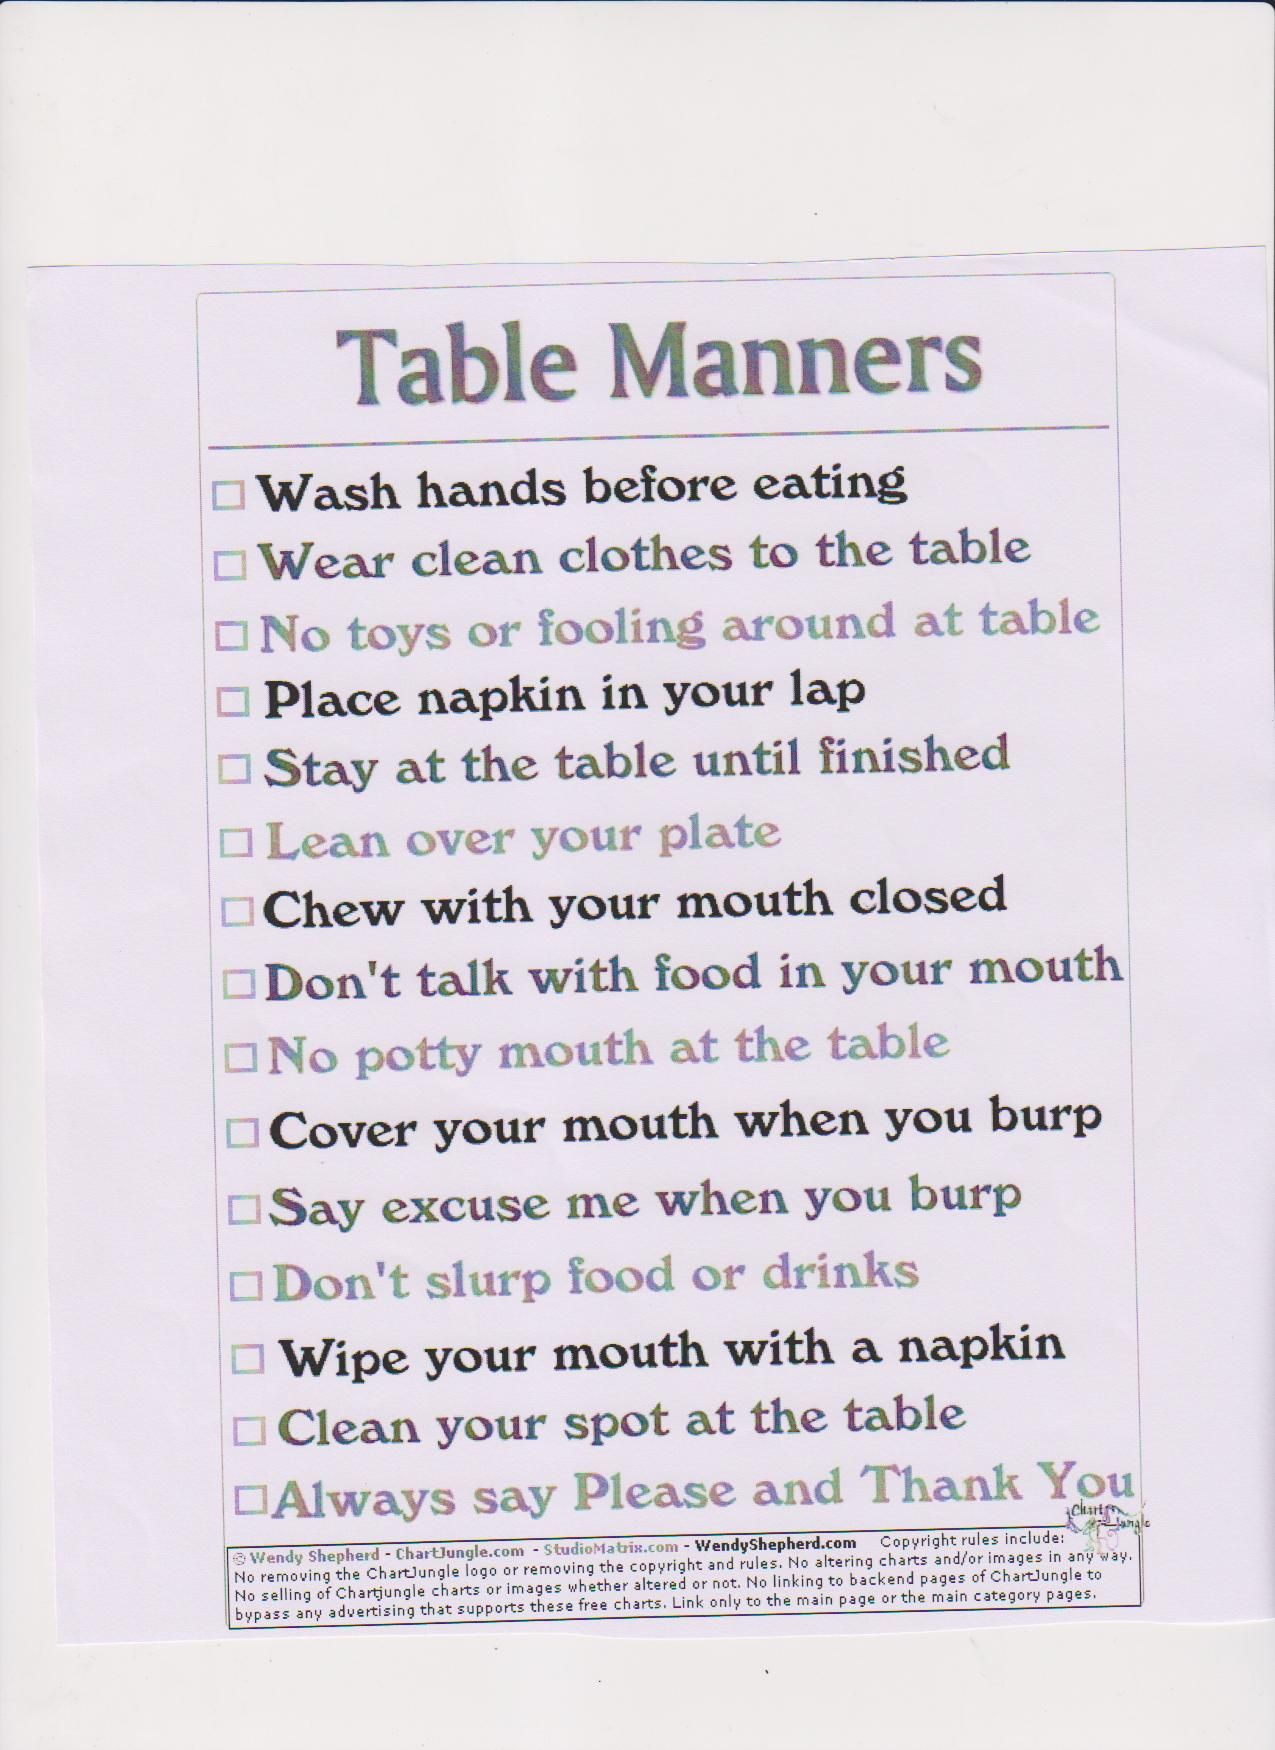 Worksheets Table Manners Worksheet table manners respectmanners pinterest for kids in the future